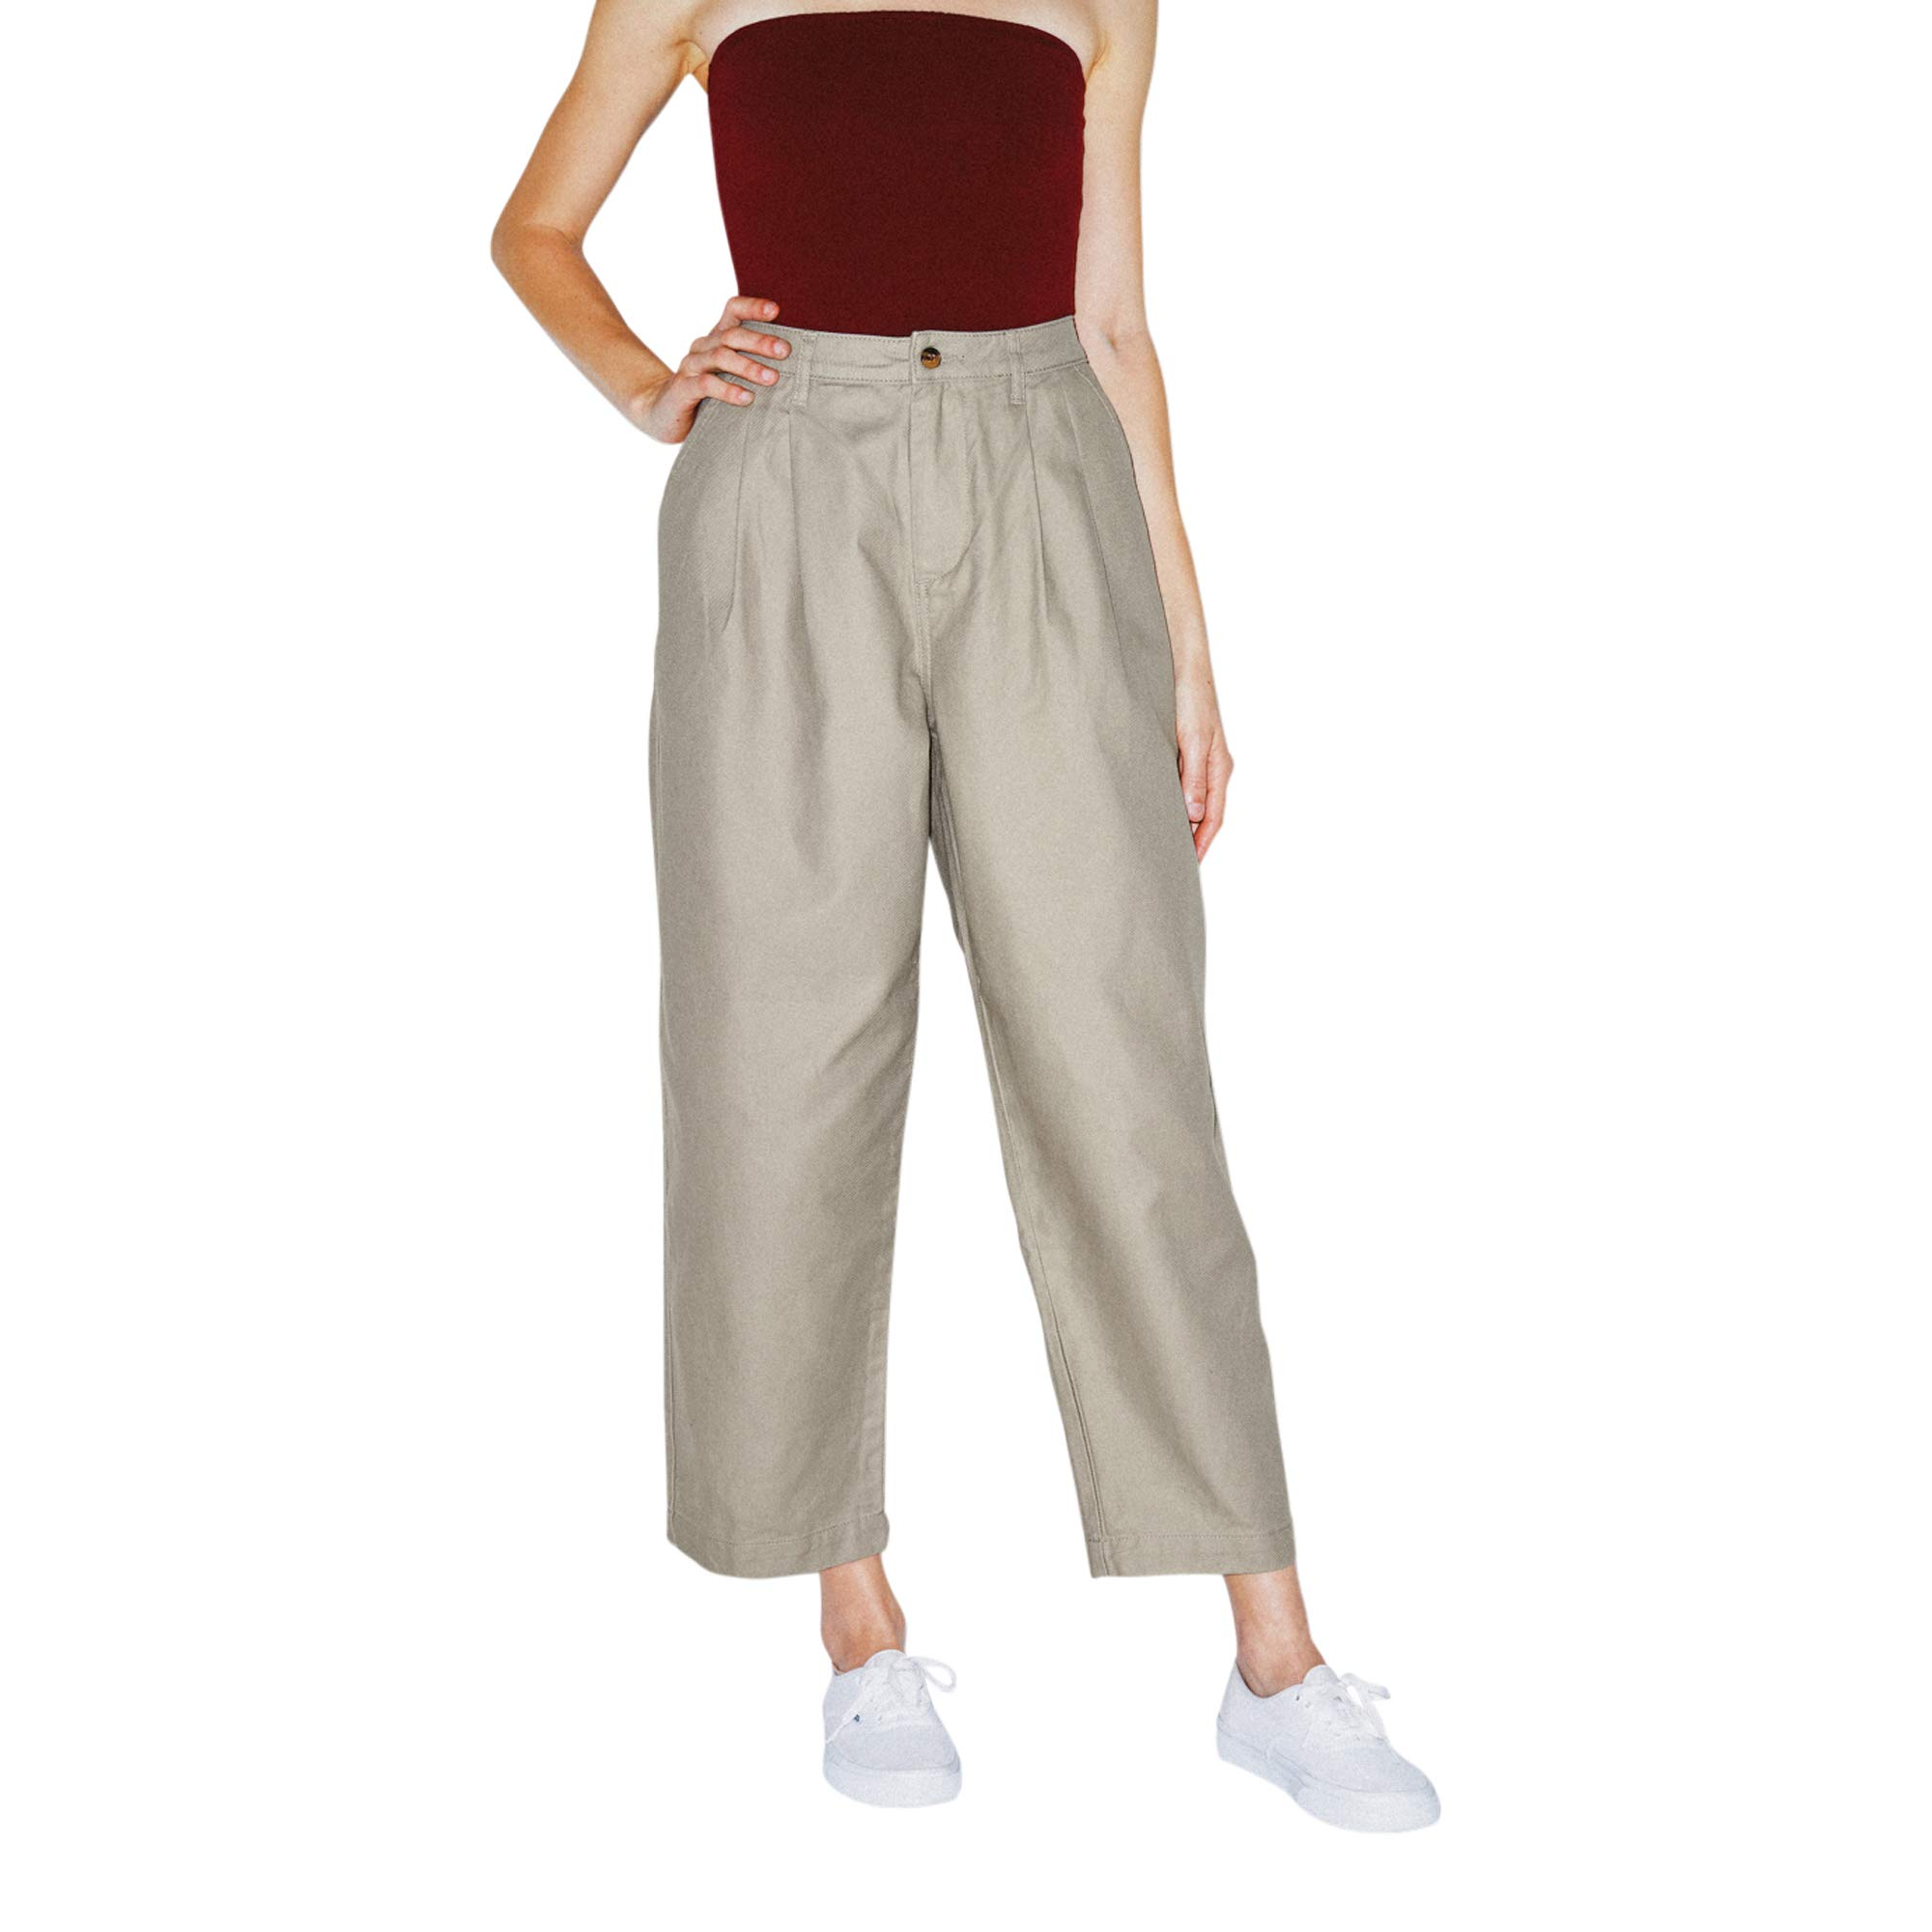 American Apparel Women's Twill Pleated Pant